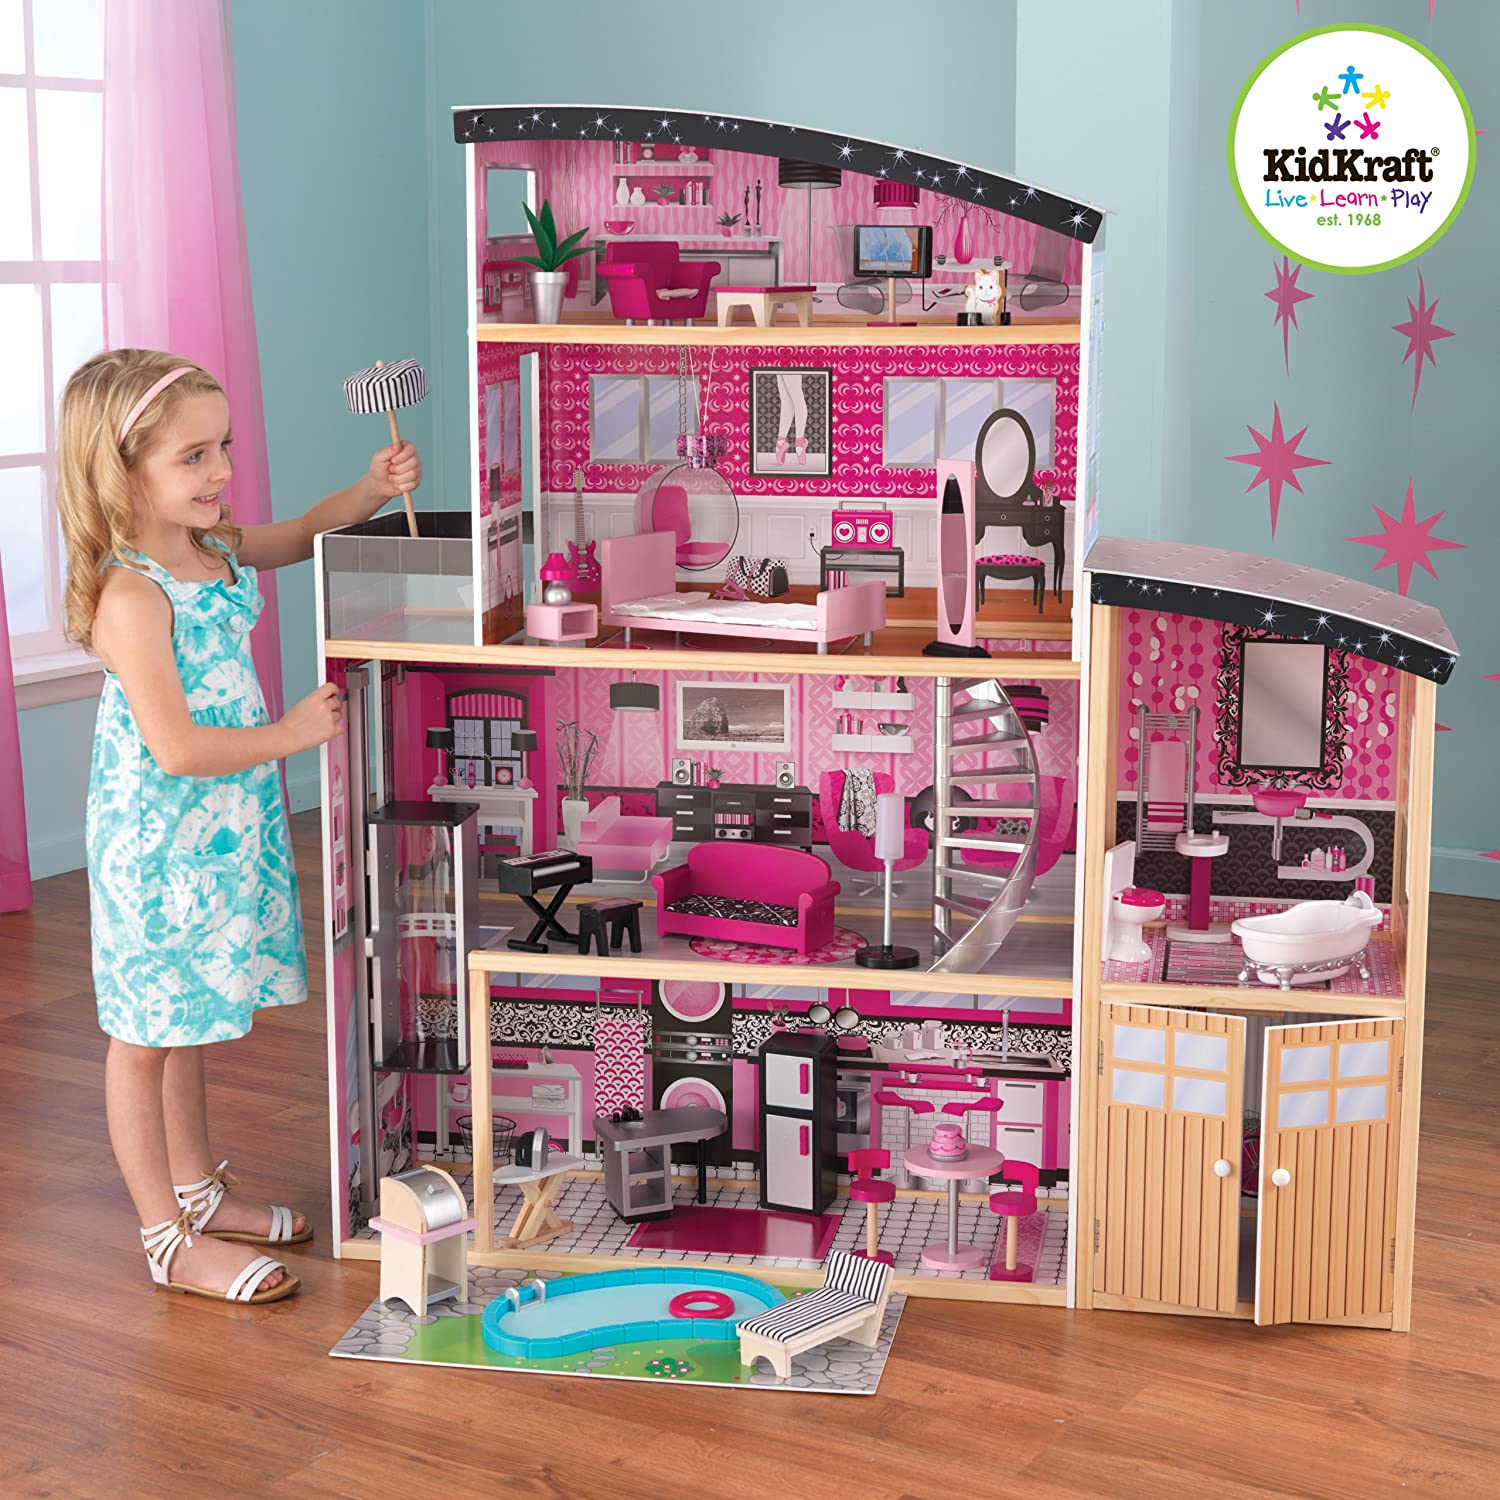 KidKraft Sparkle Mansion Dollhouse 30 furniture pieces and accessories doll house for barbies 12 inch fashion dolls